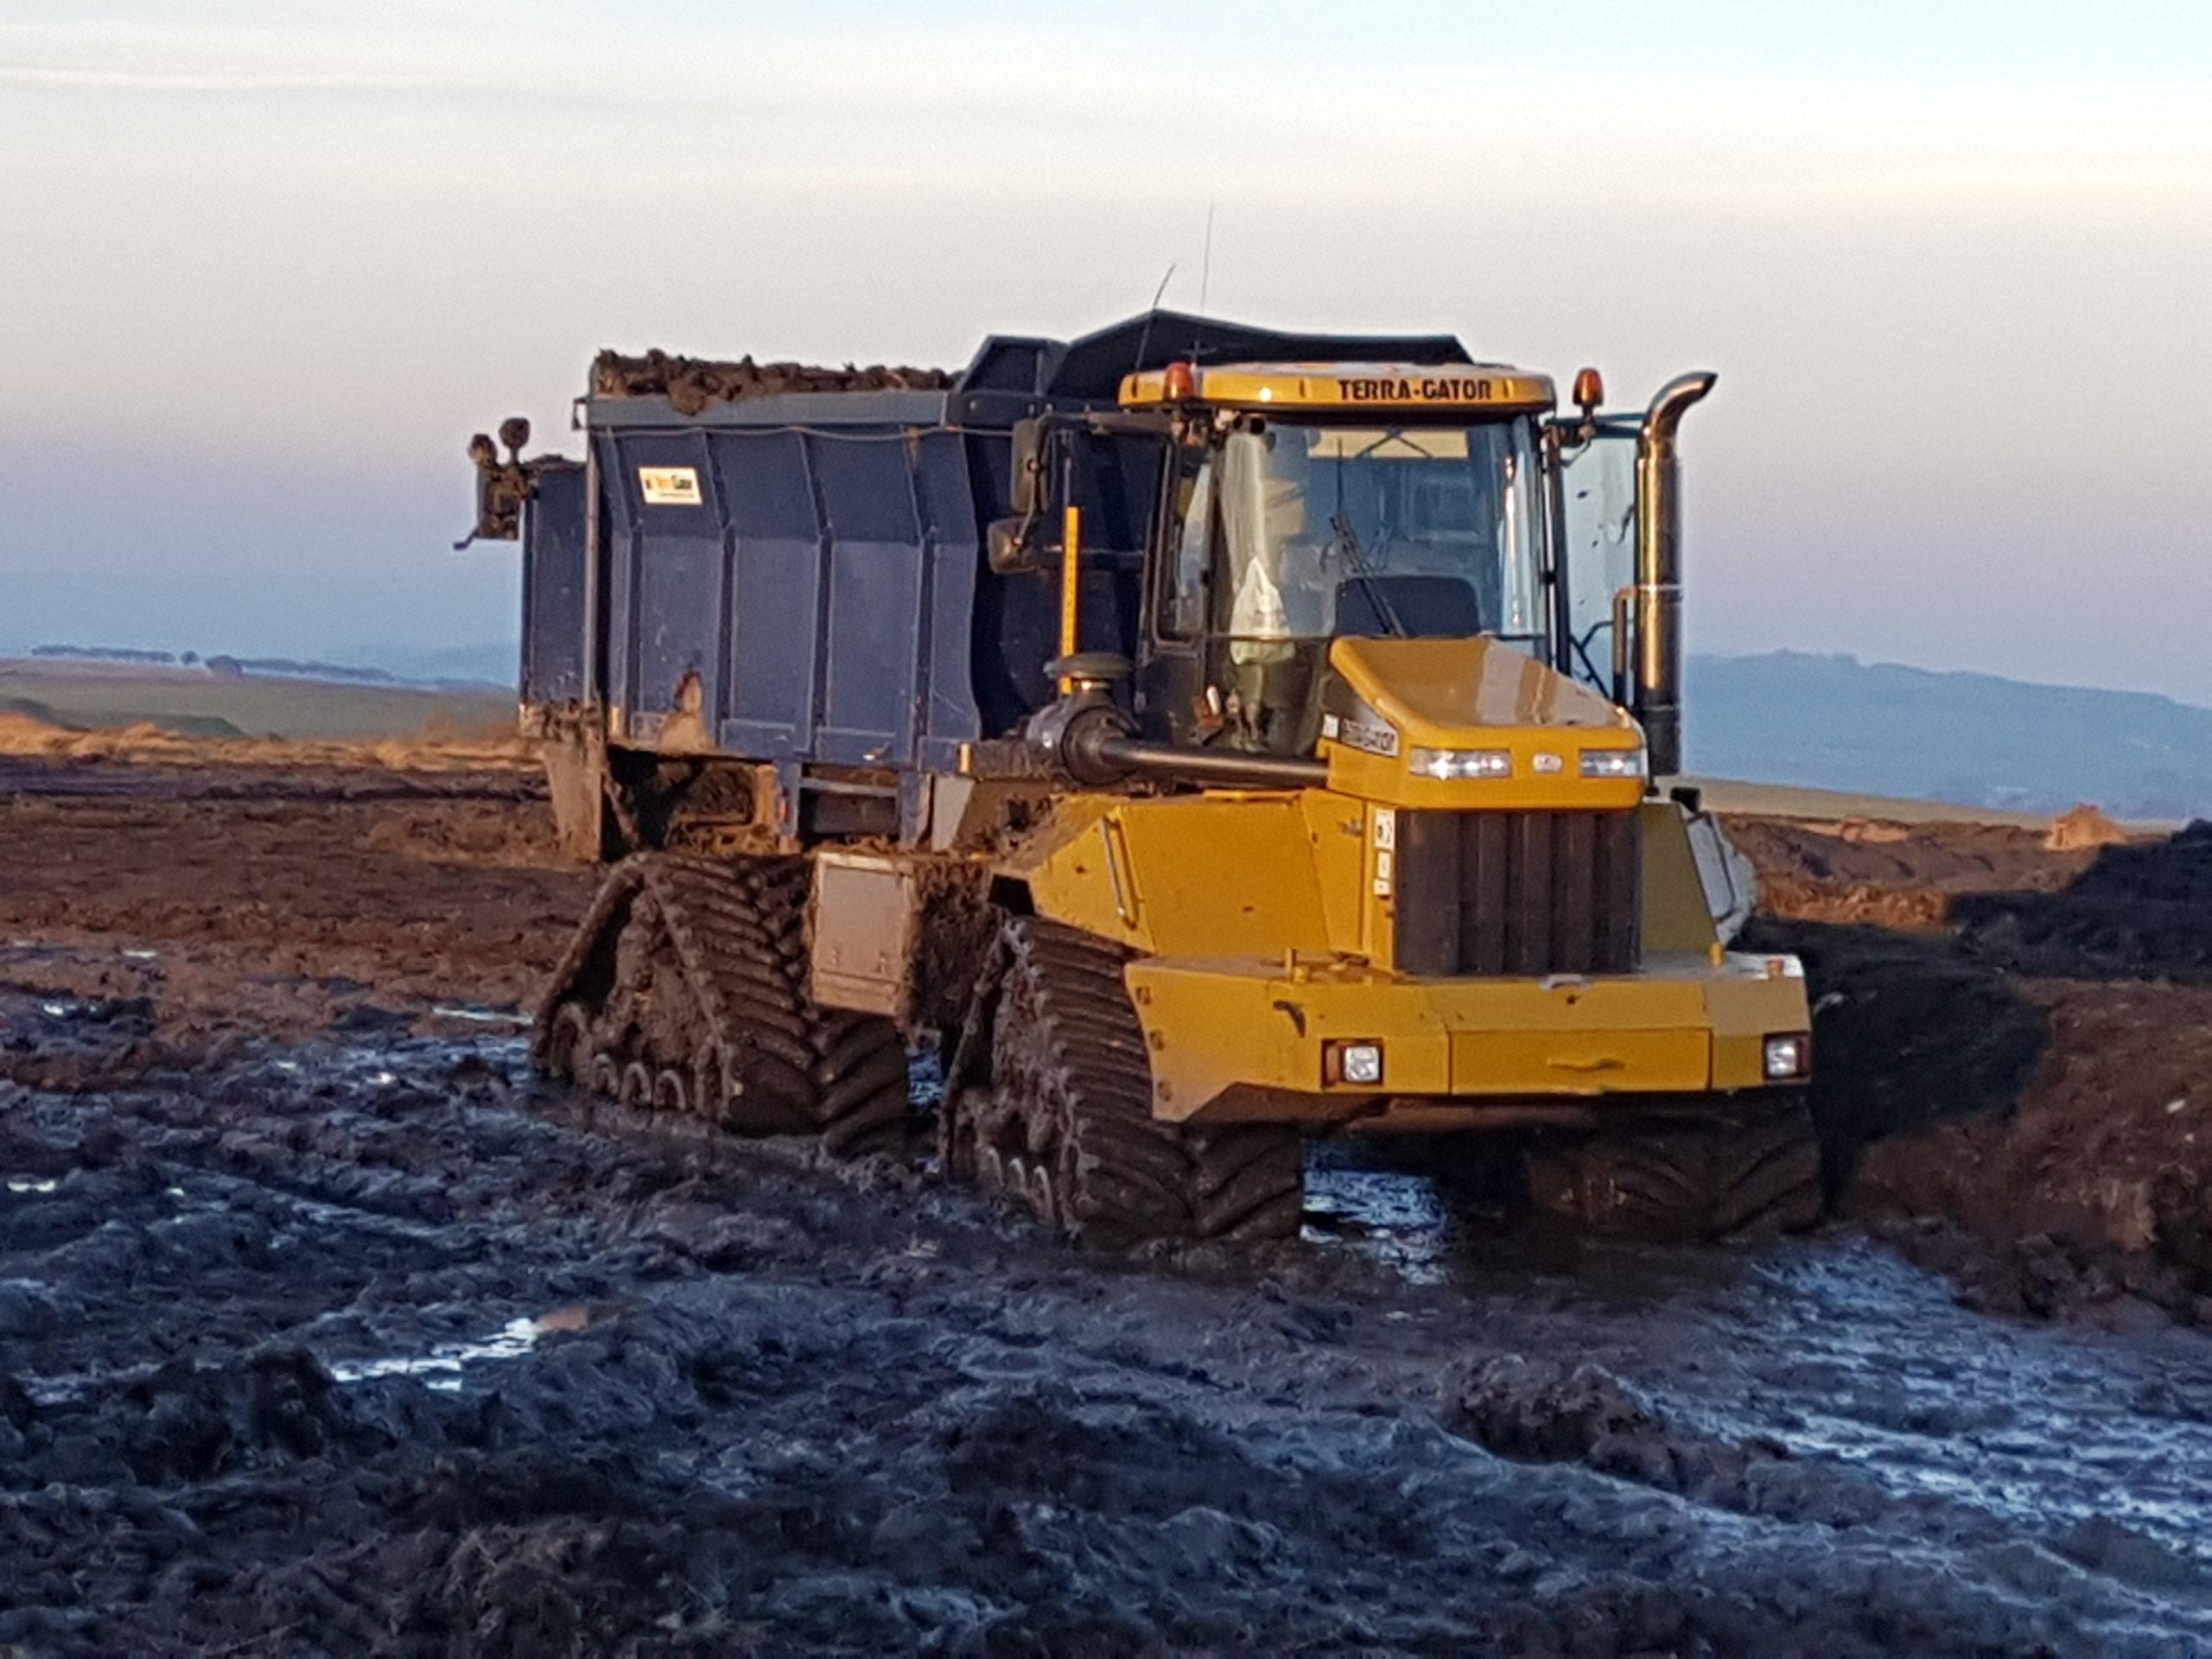 Poluzzi tracks fitted to Terragator 2104 working in Scotland